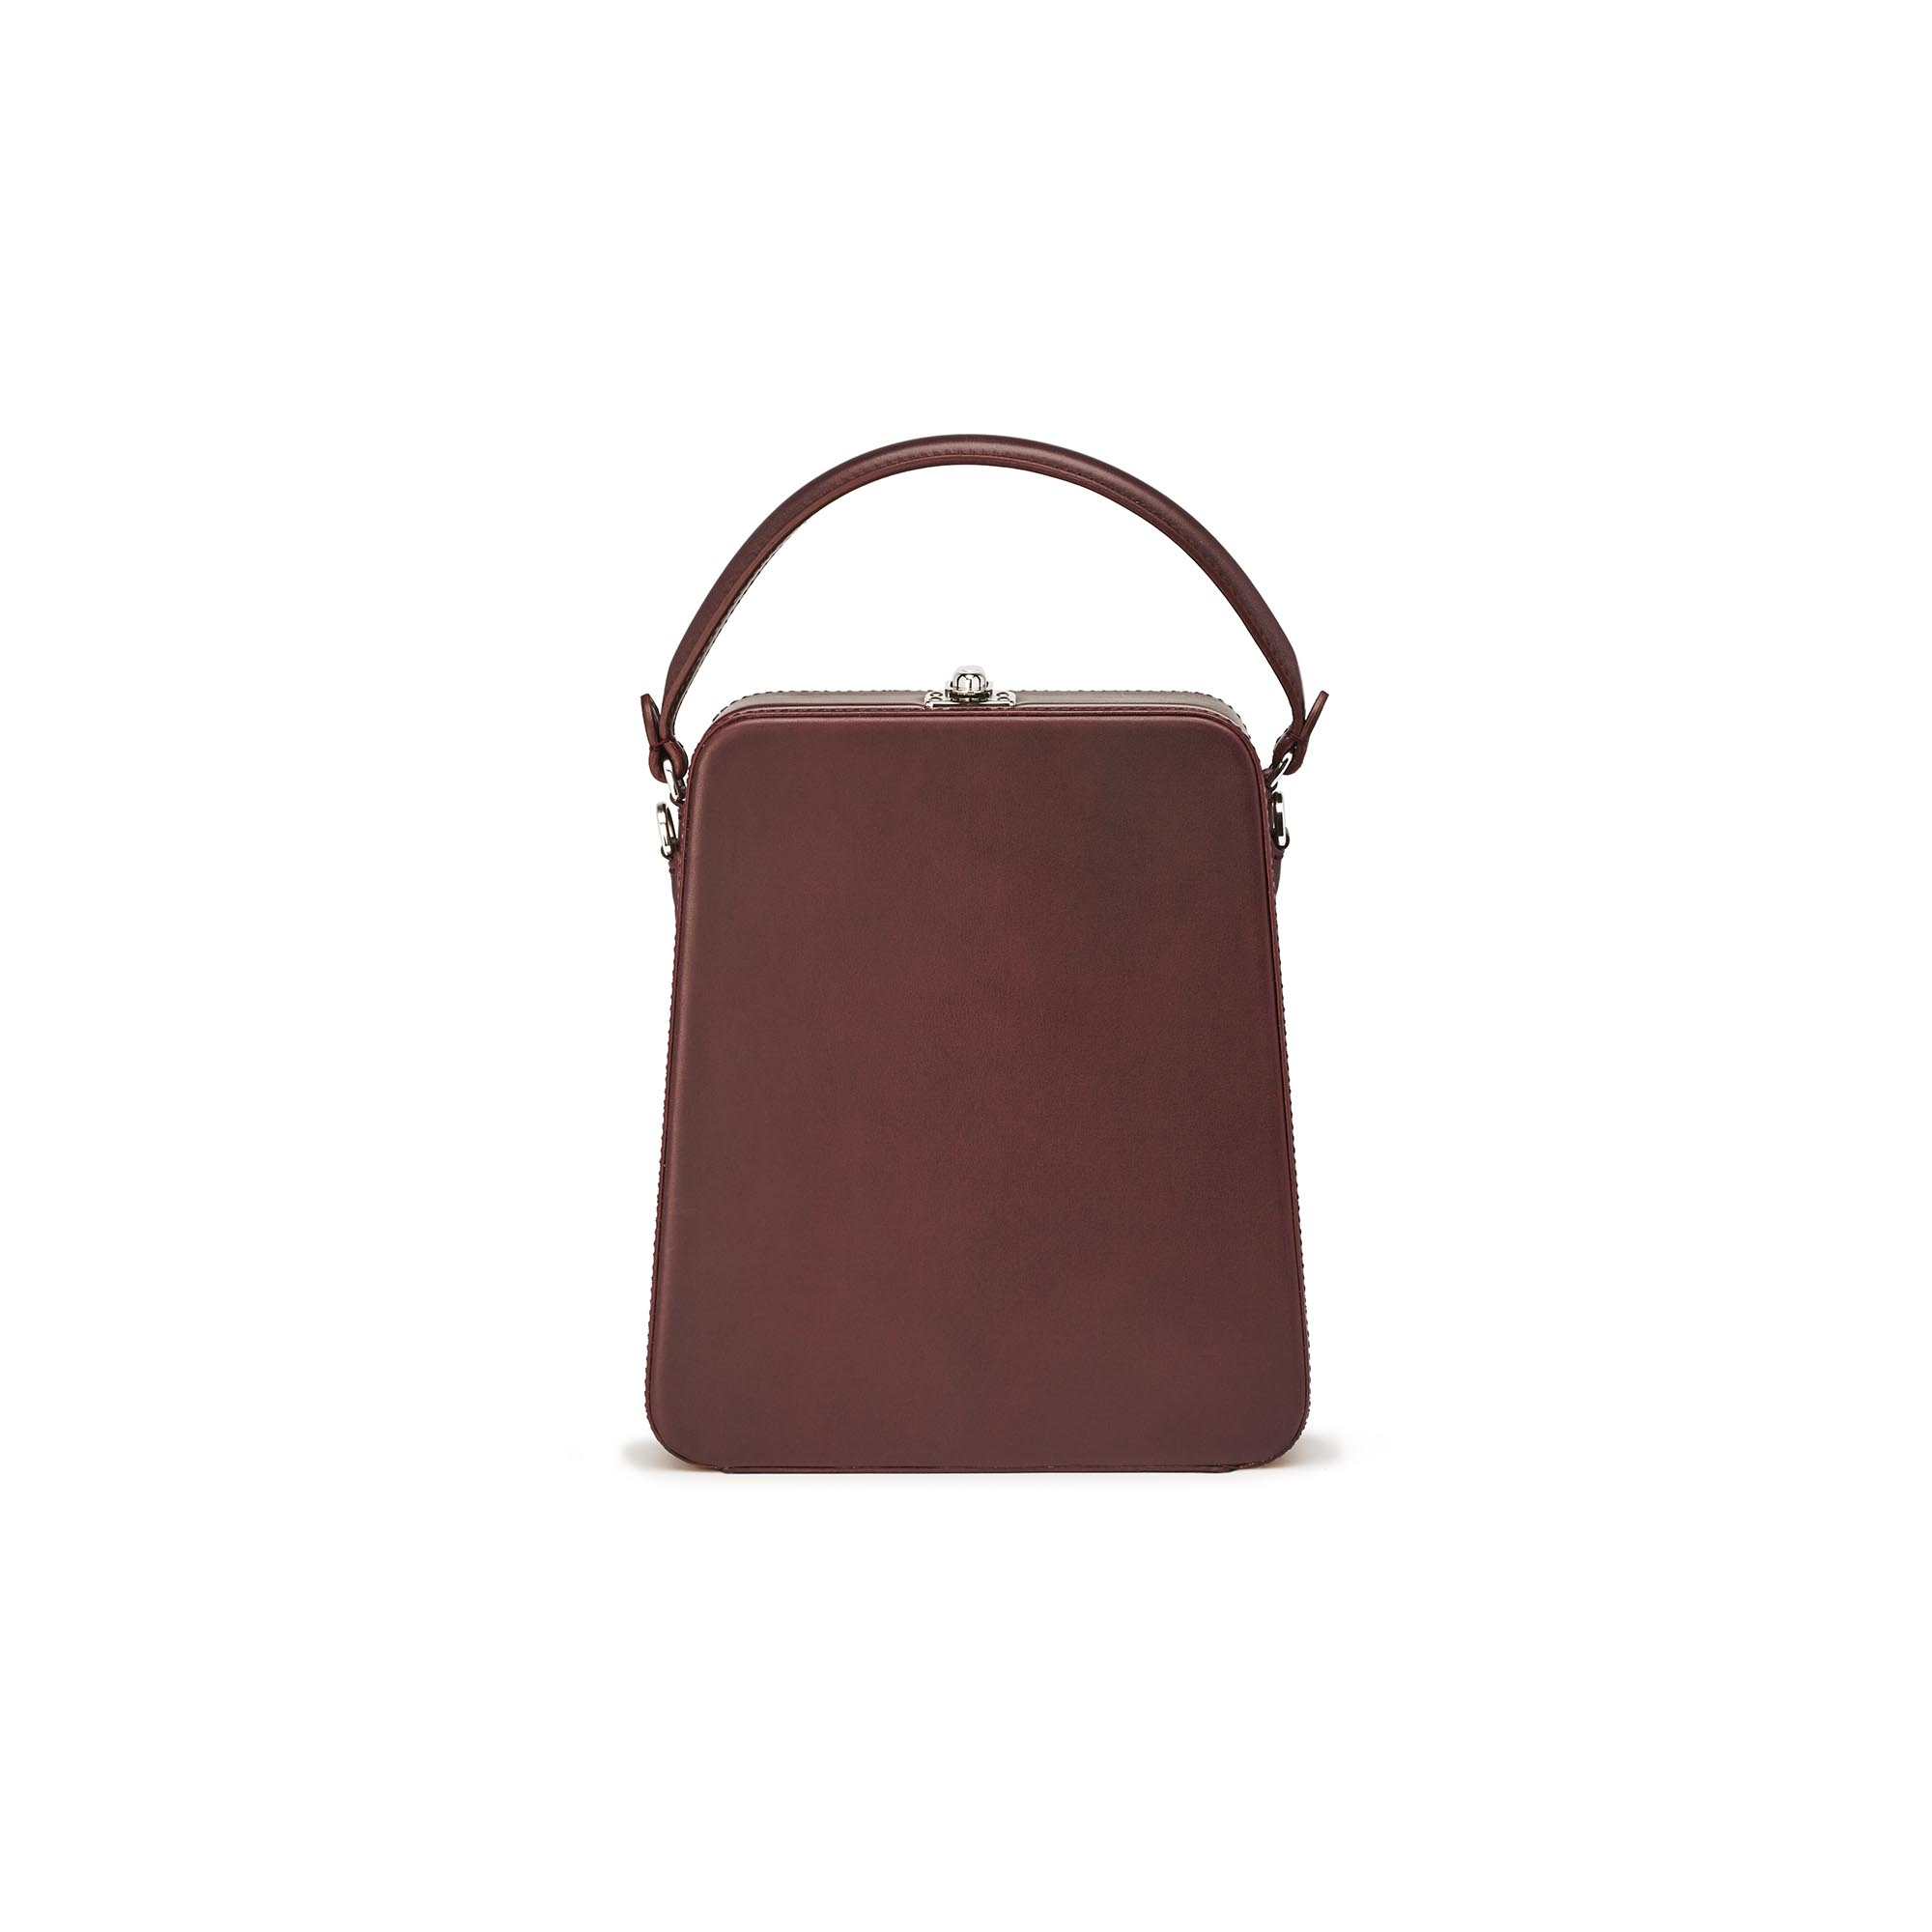 Tall-Bertoncina-burgundy-french-calf-bag-Bertoni-1949_01